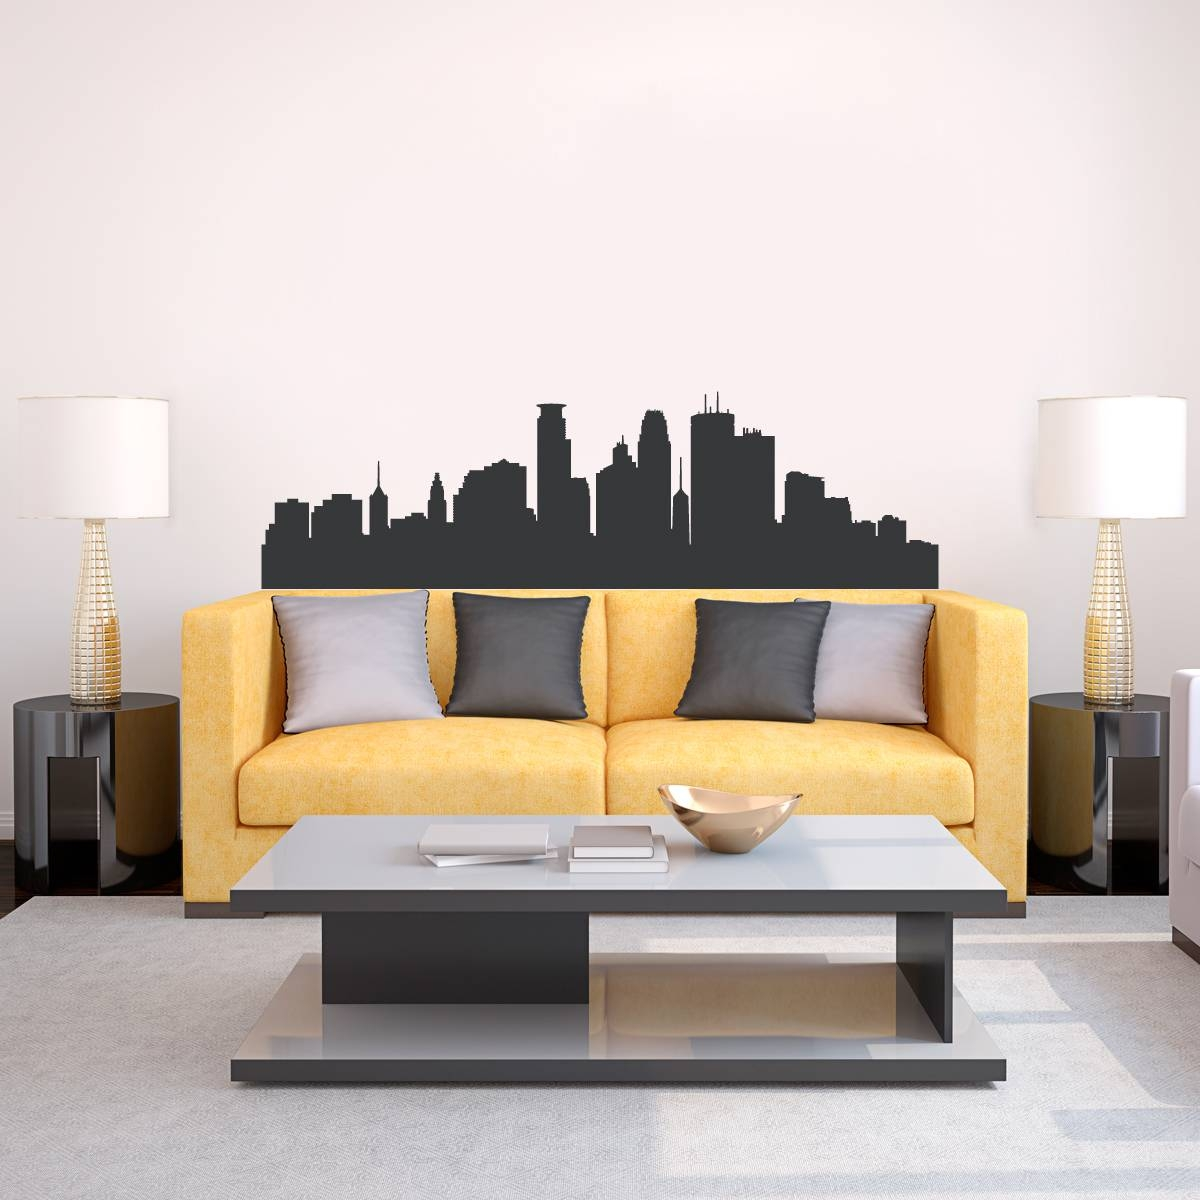 Minneapolis Minnesota Skyline Vinyl Wall Decal Sticker Intended For 2017 Minneapolis Wall Art (View 3 of 20)